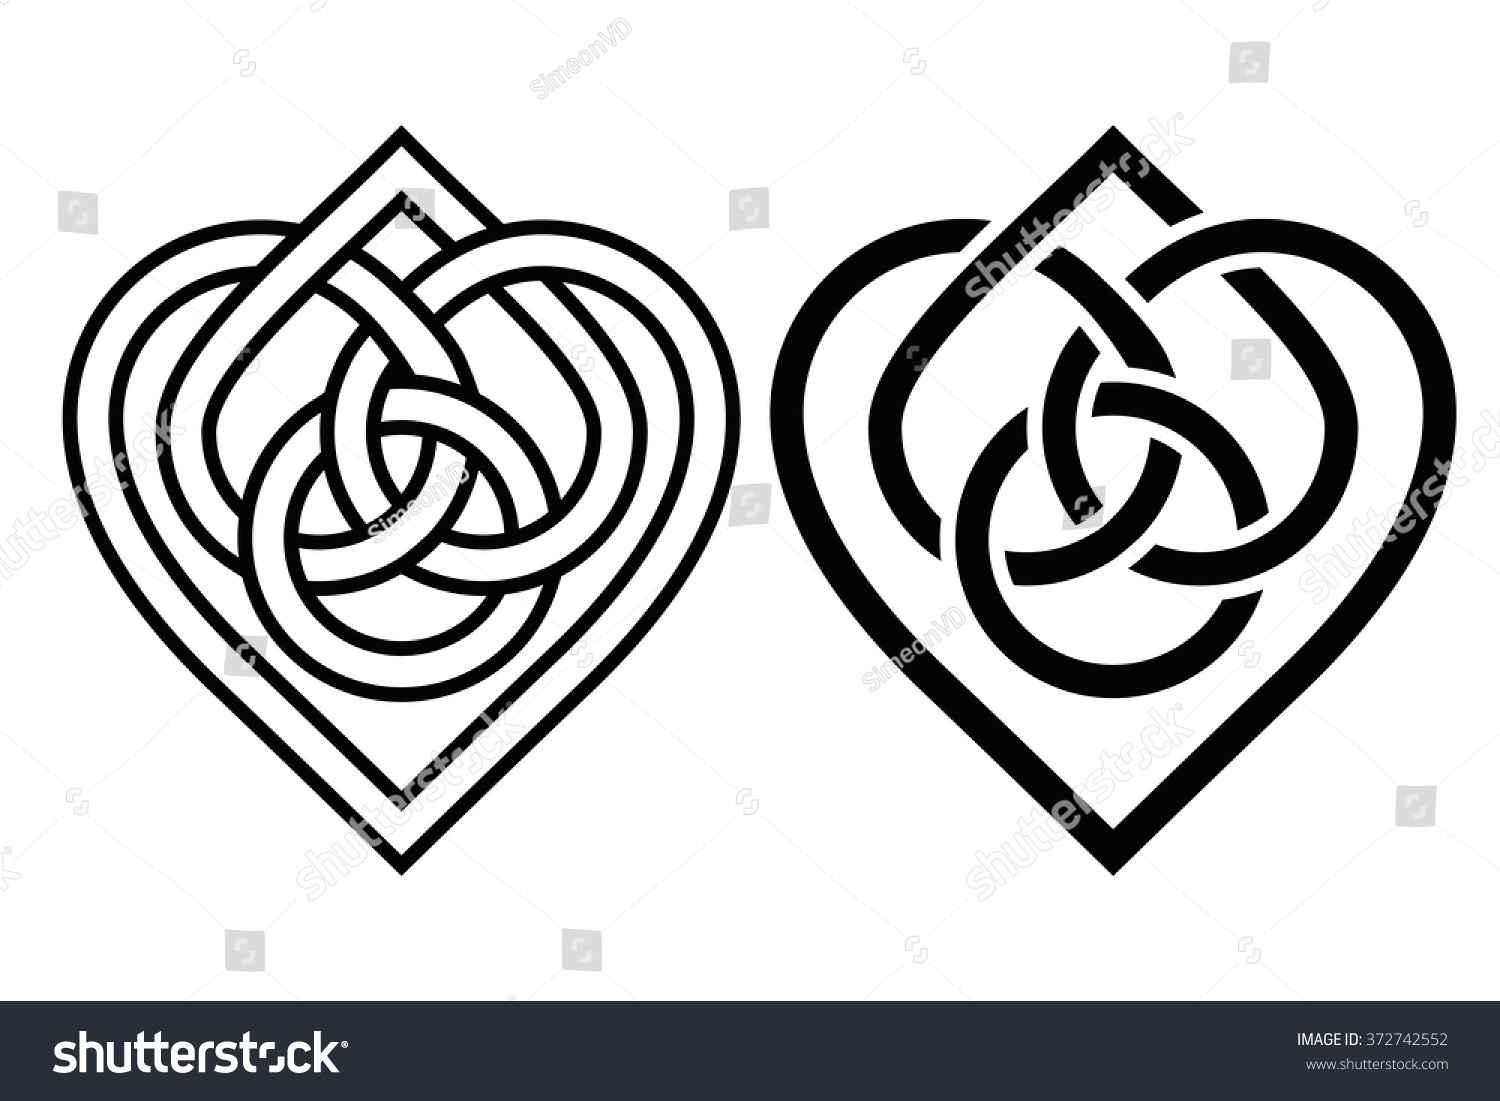 Intertwined heart celtic knot two variants stock vector 372742552 intertwined heart in celtic knot two variants biocorpaavc Gallery